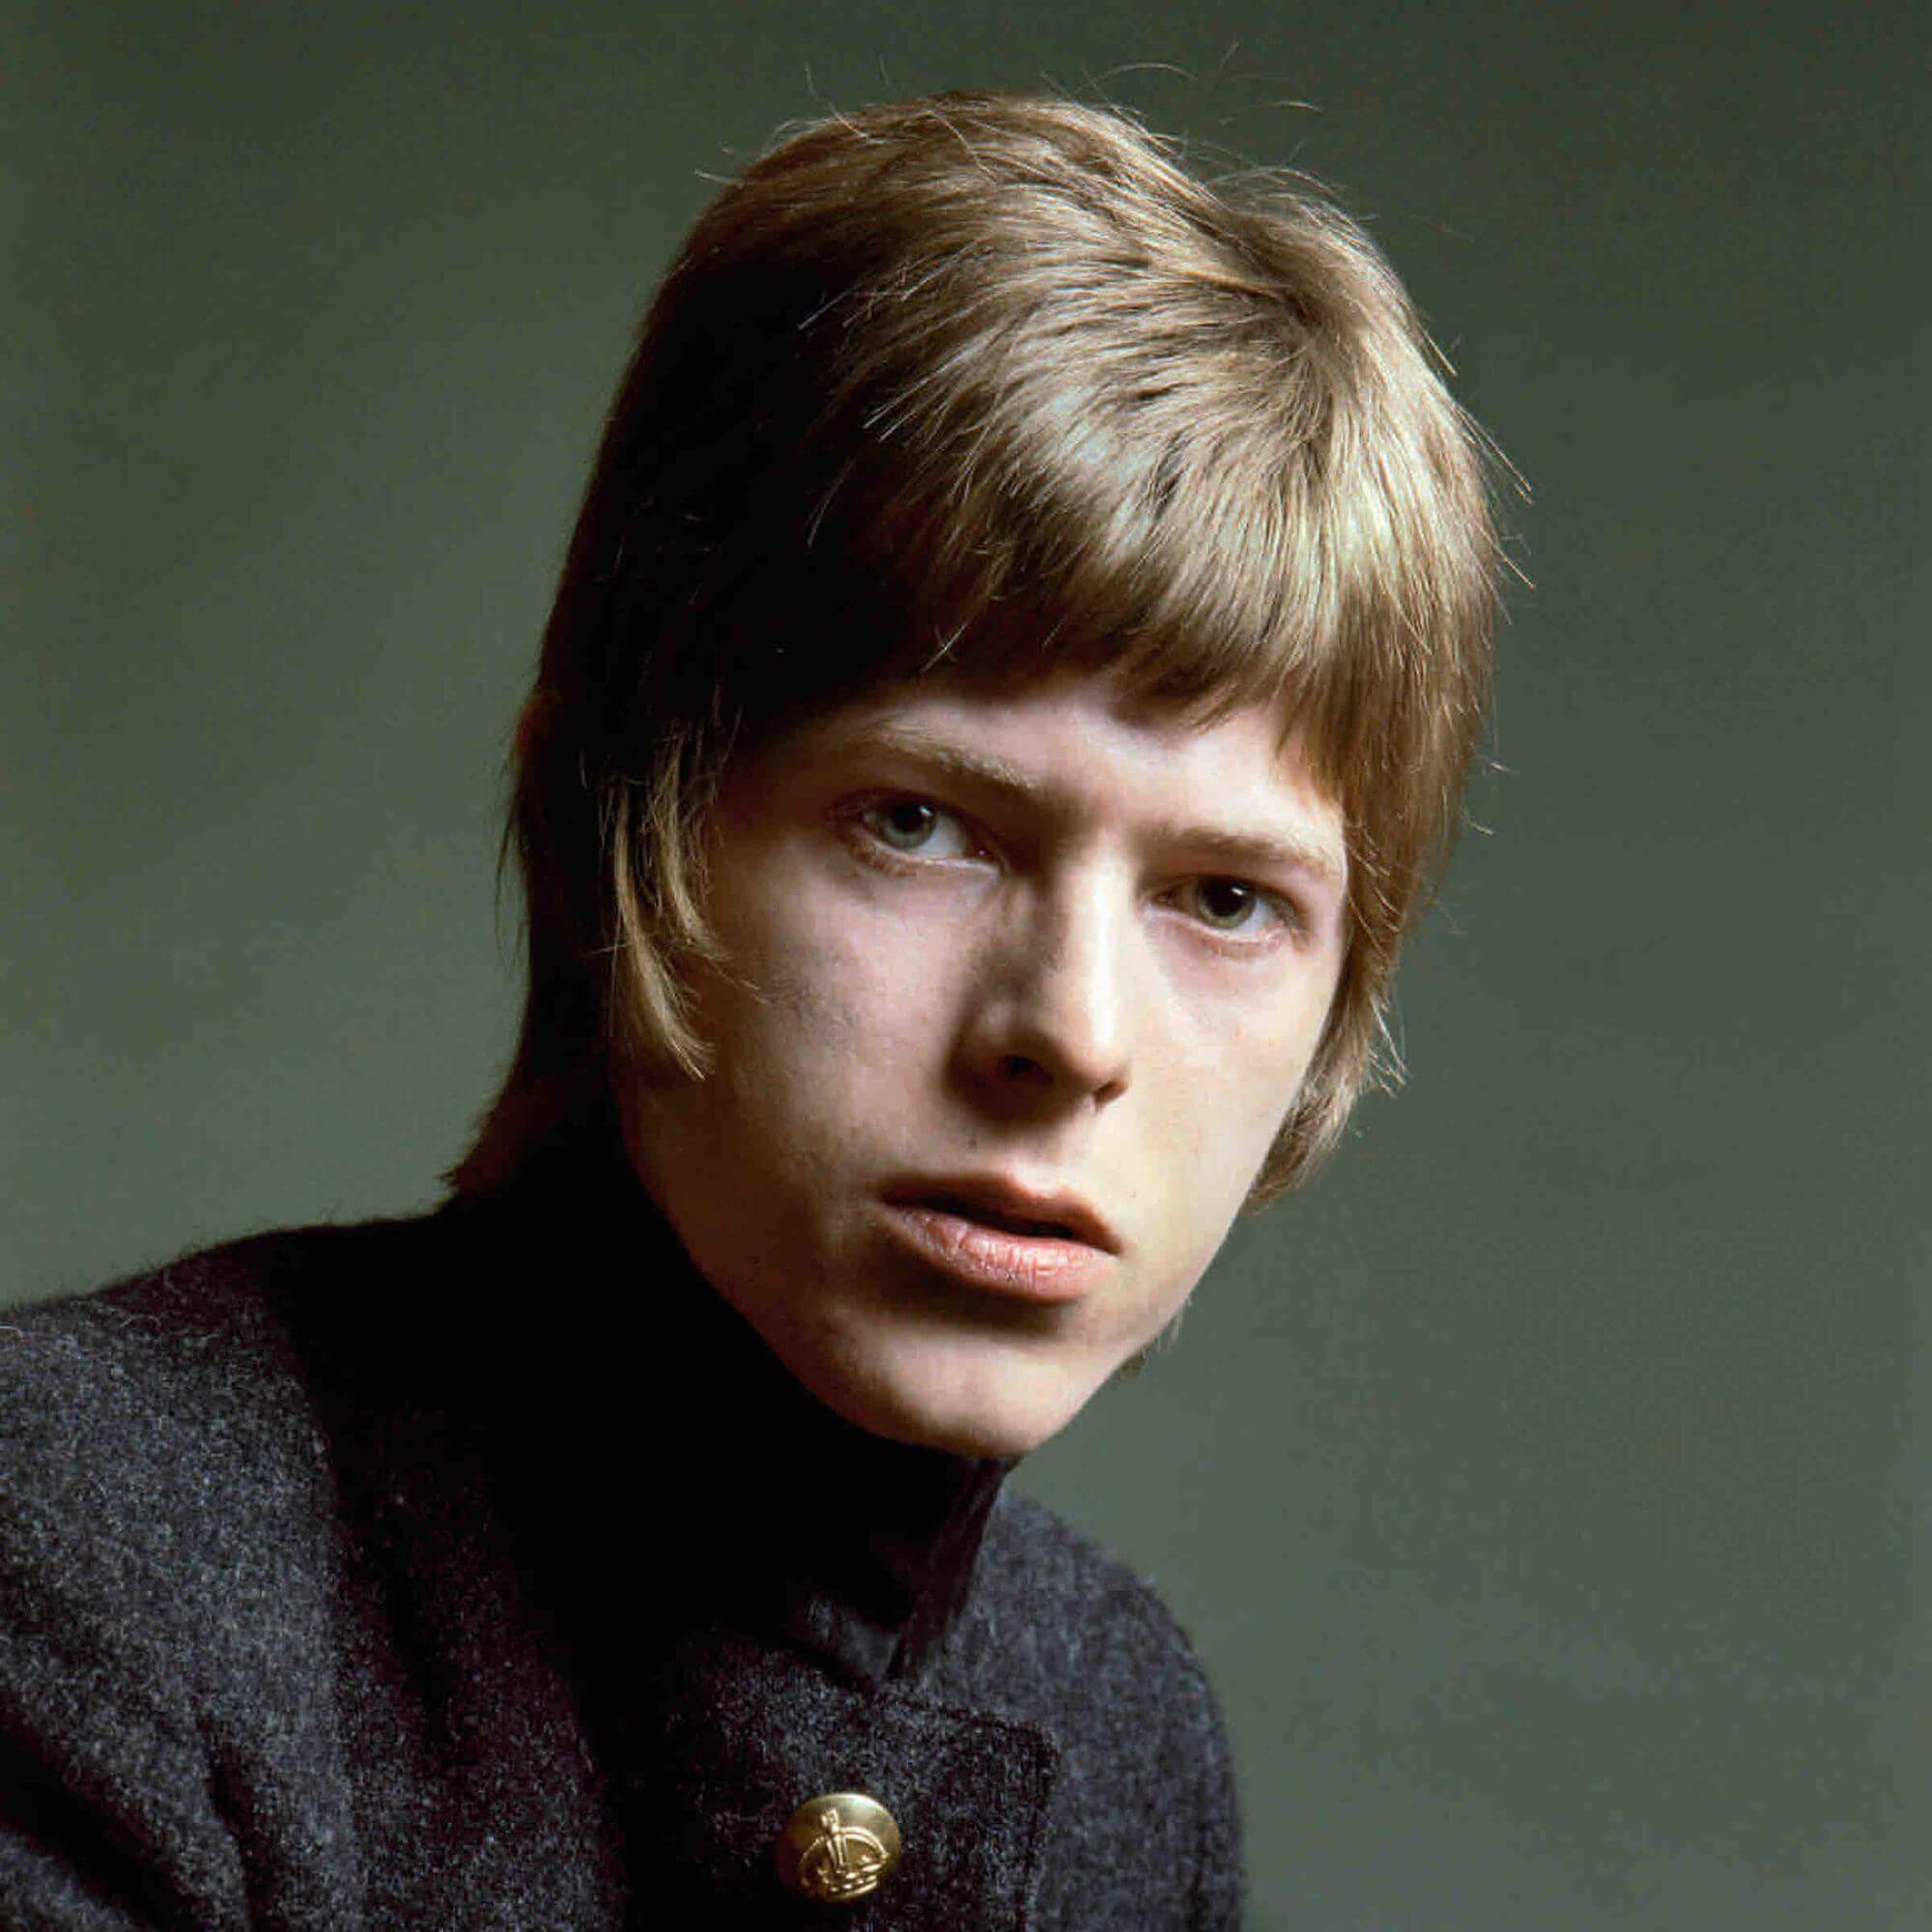 20 year old david bowie fy 3